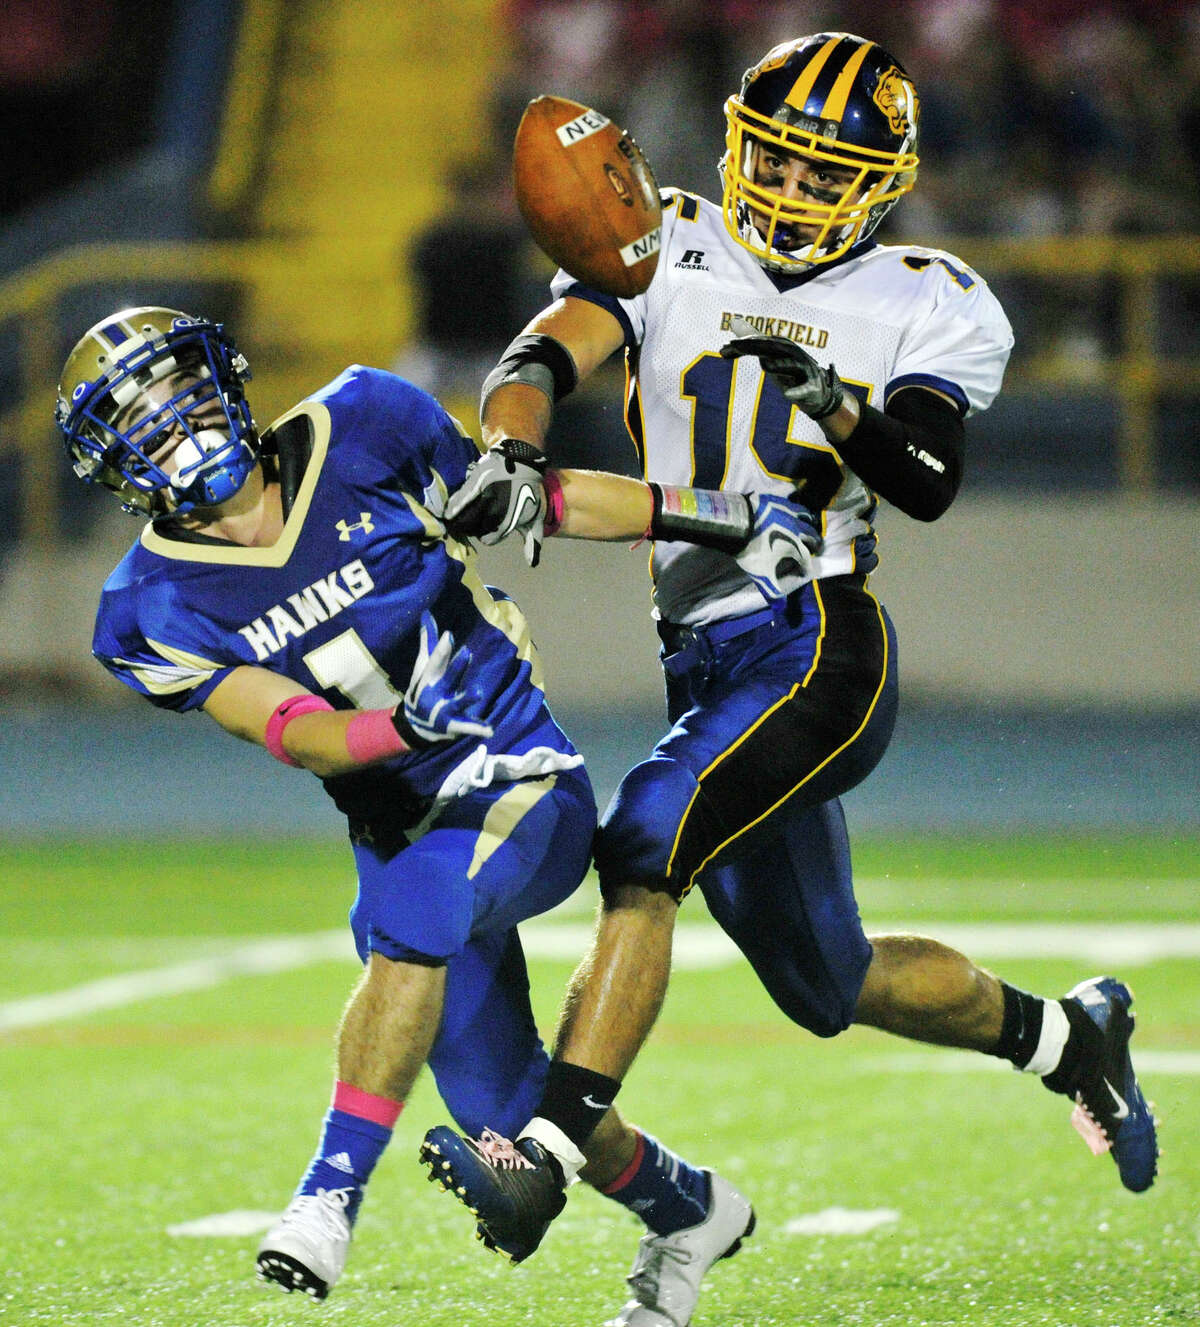 Brookfield's Casey Burdick breaks up a pass intended for Newtown's Justin DeVellis during their game at Newtown High School on Friday, Oct. 5, 2012. Newtown won, 35-7.